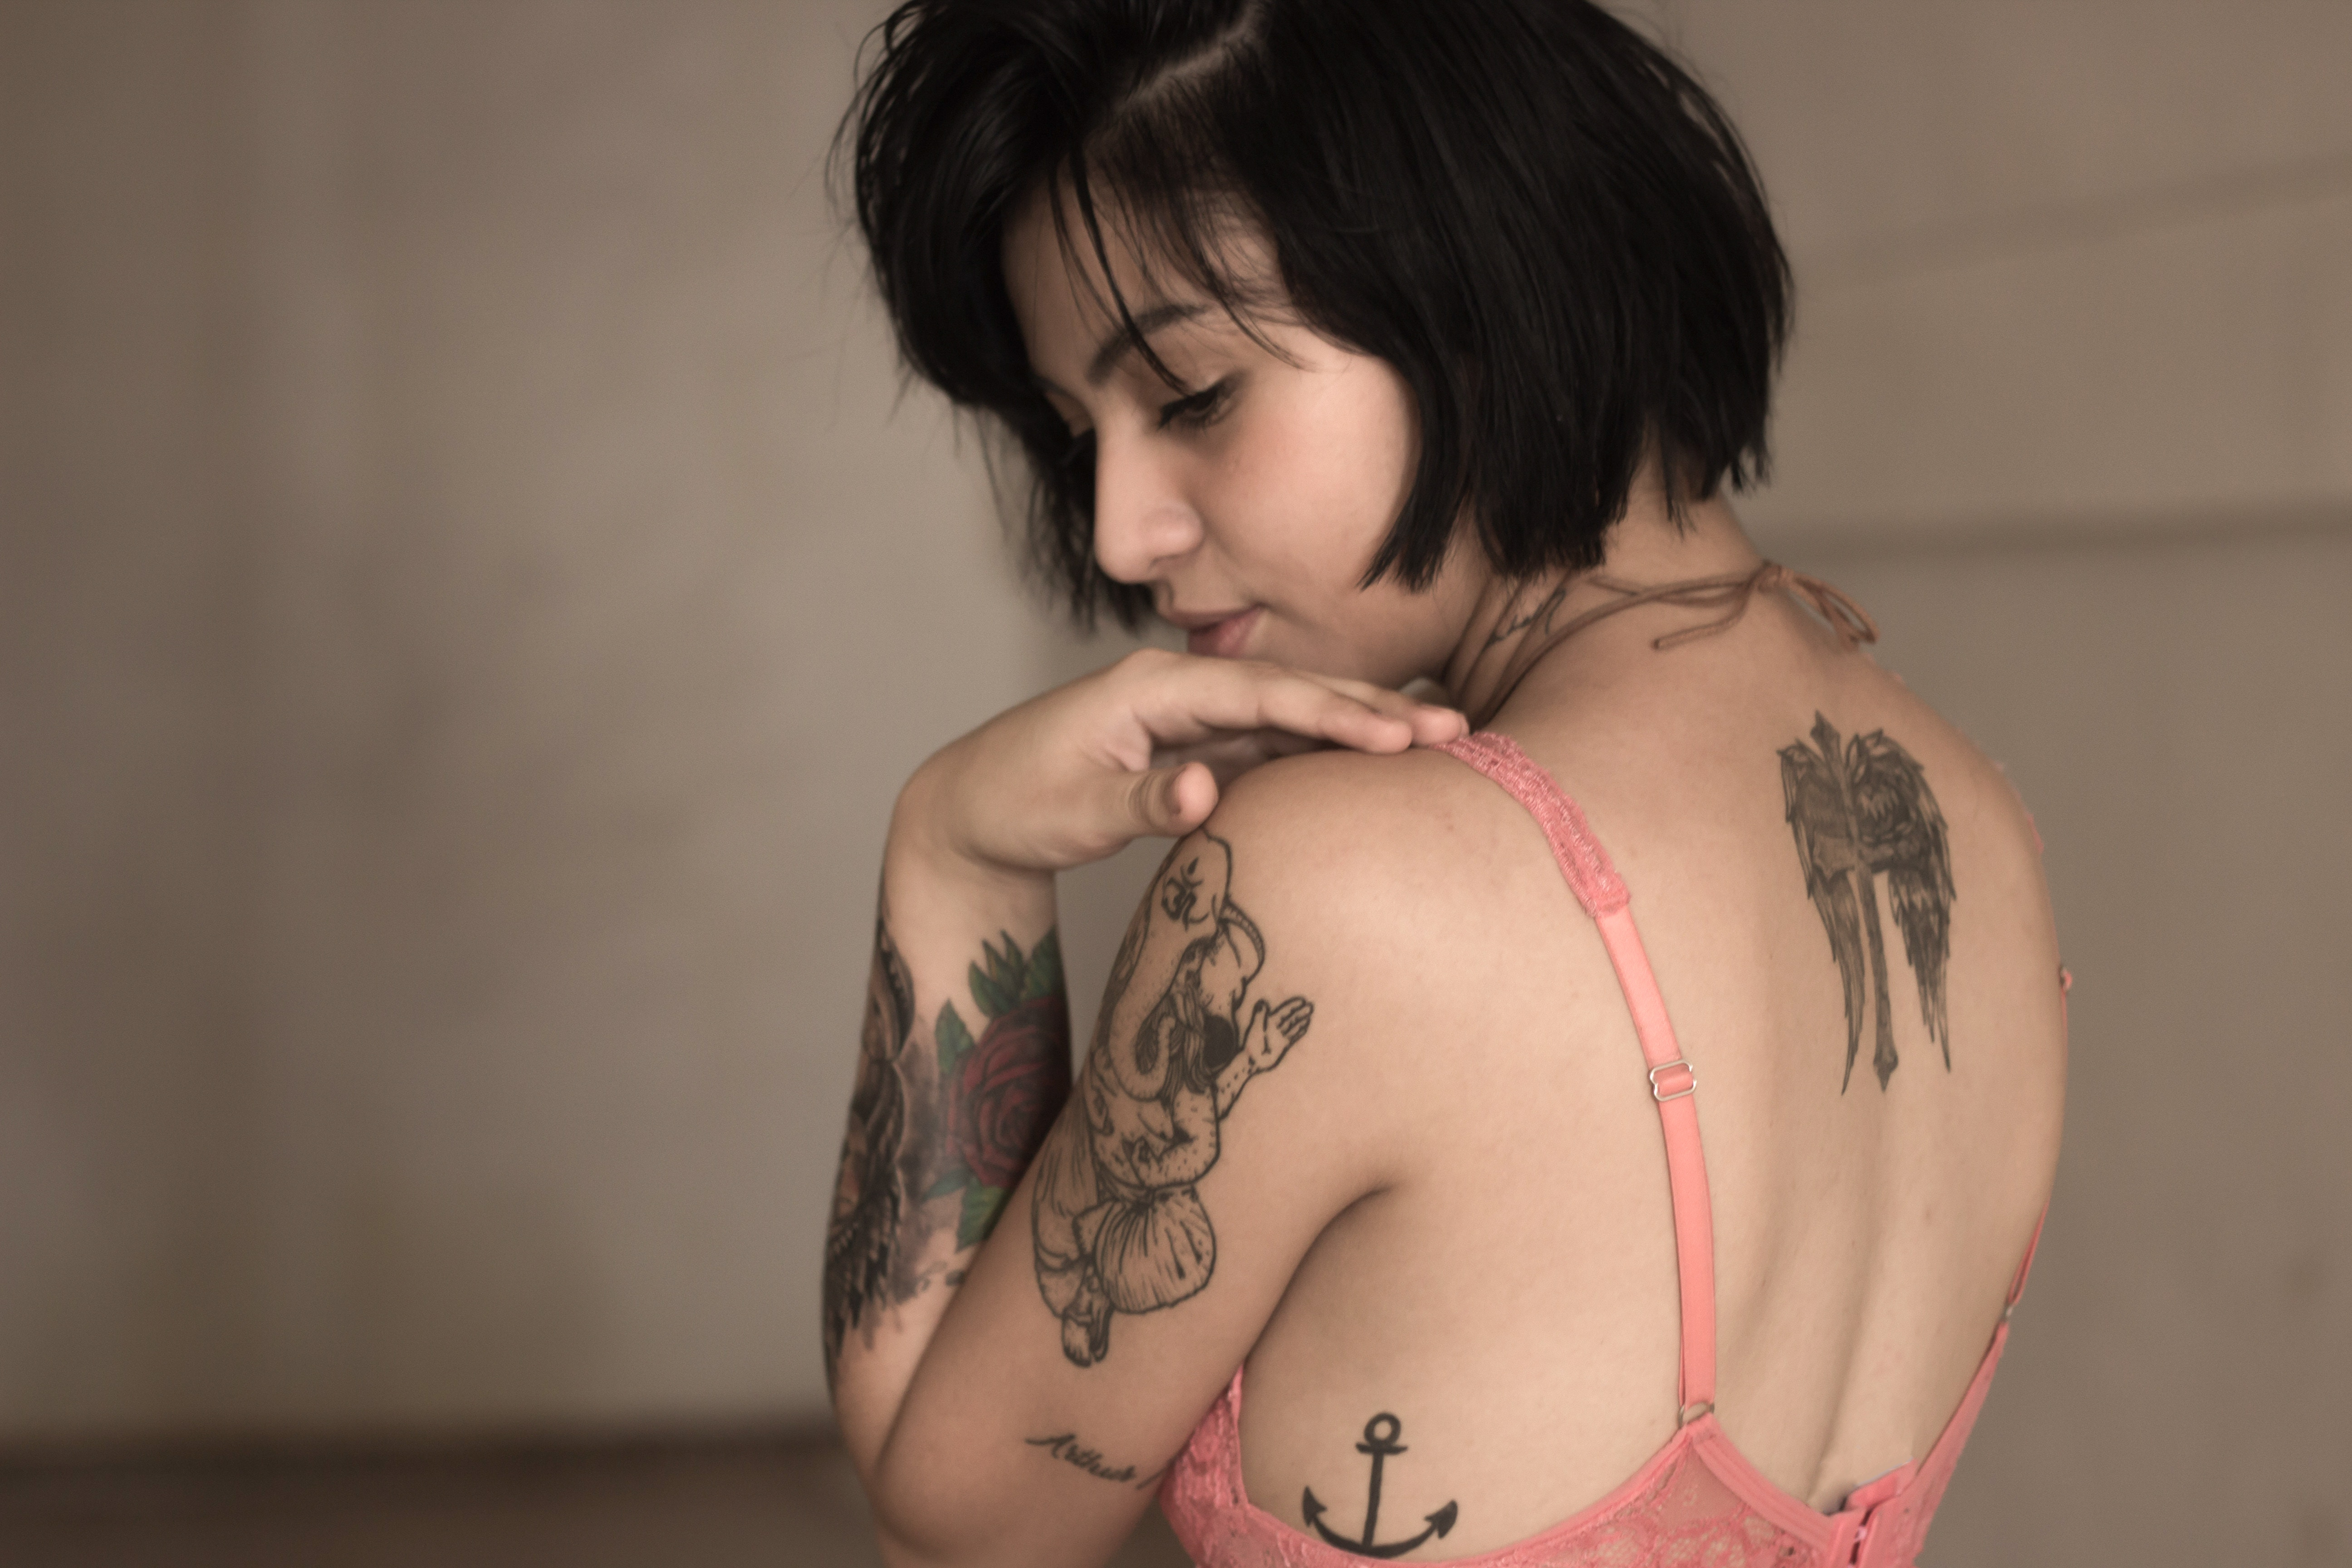 girl with tattoos on her shoulders looking back